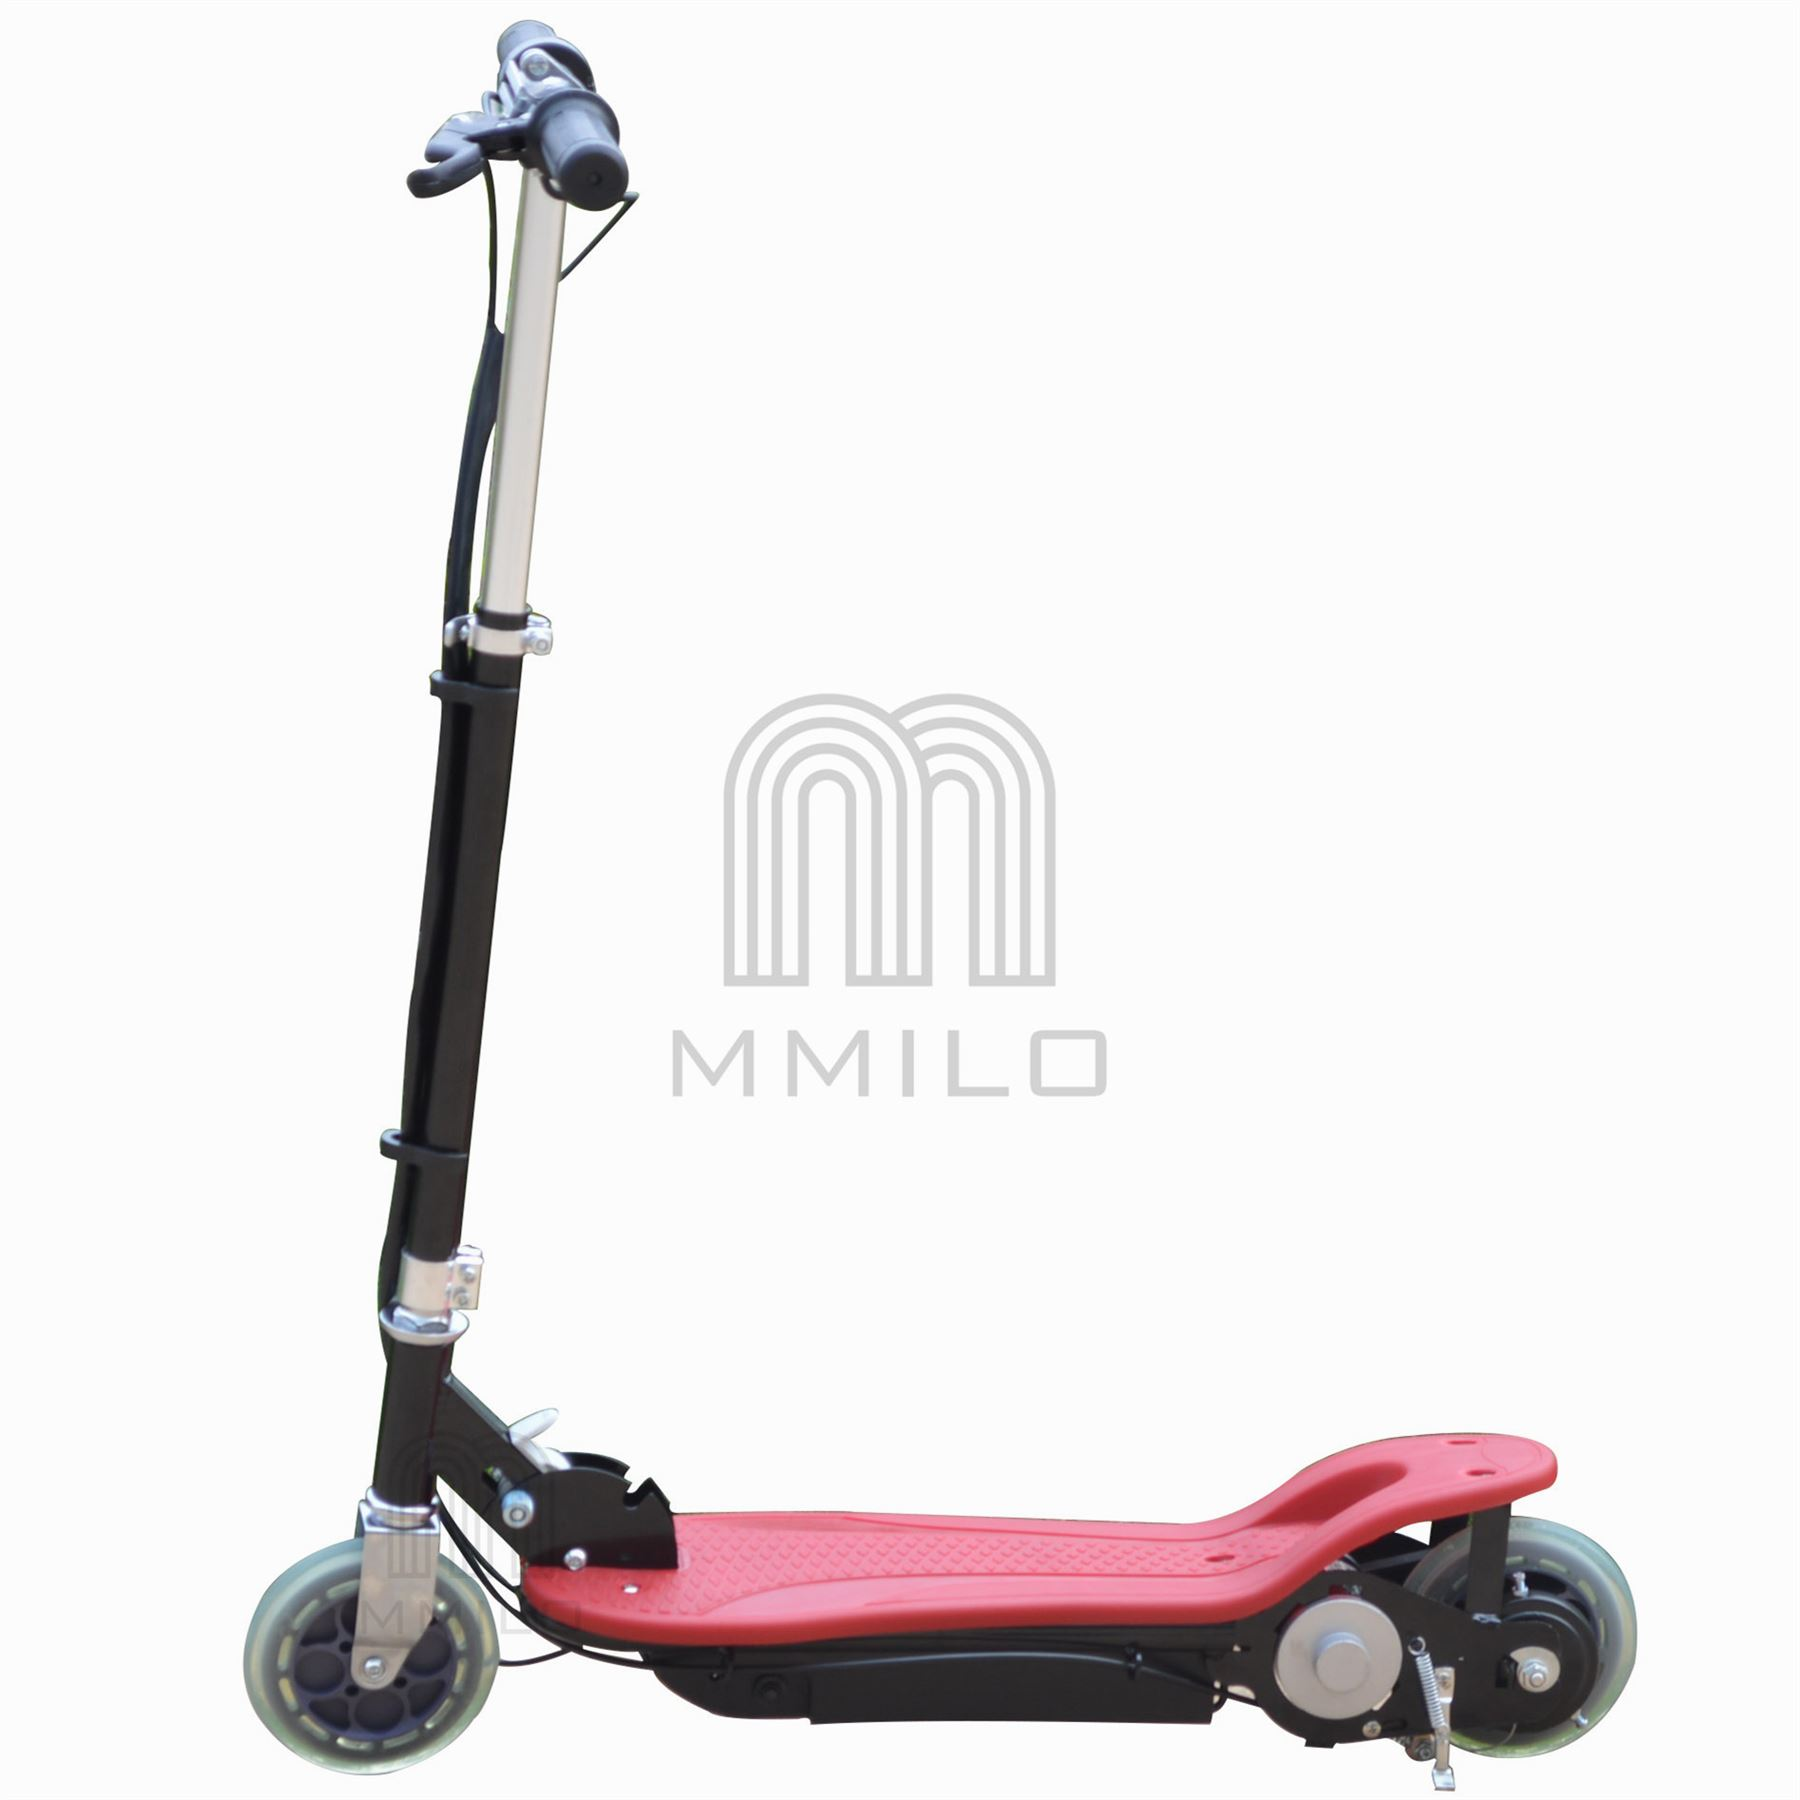 electric e scooter enfants ride on toys sans si ge 120 w 7mph 12 v batterie ebay. Black Bedroom Furniture Sets. Home Design Ideas